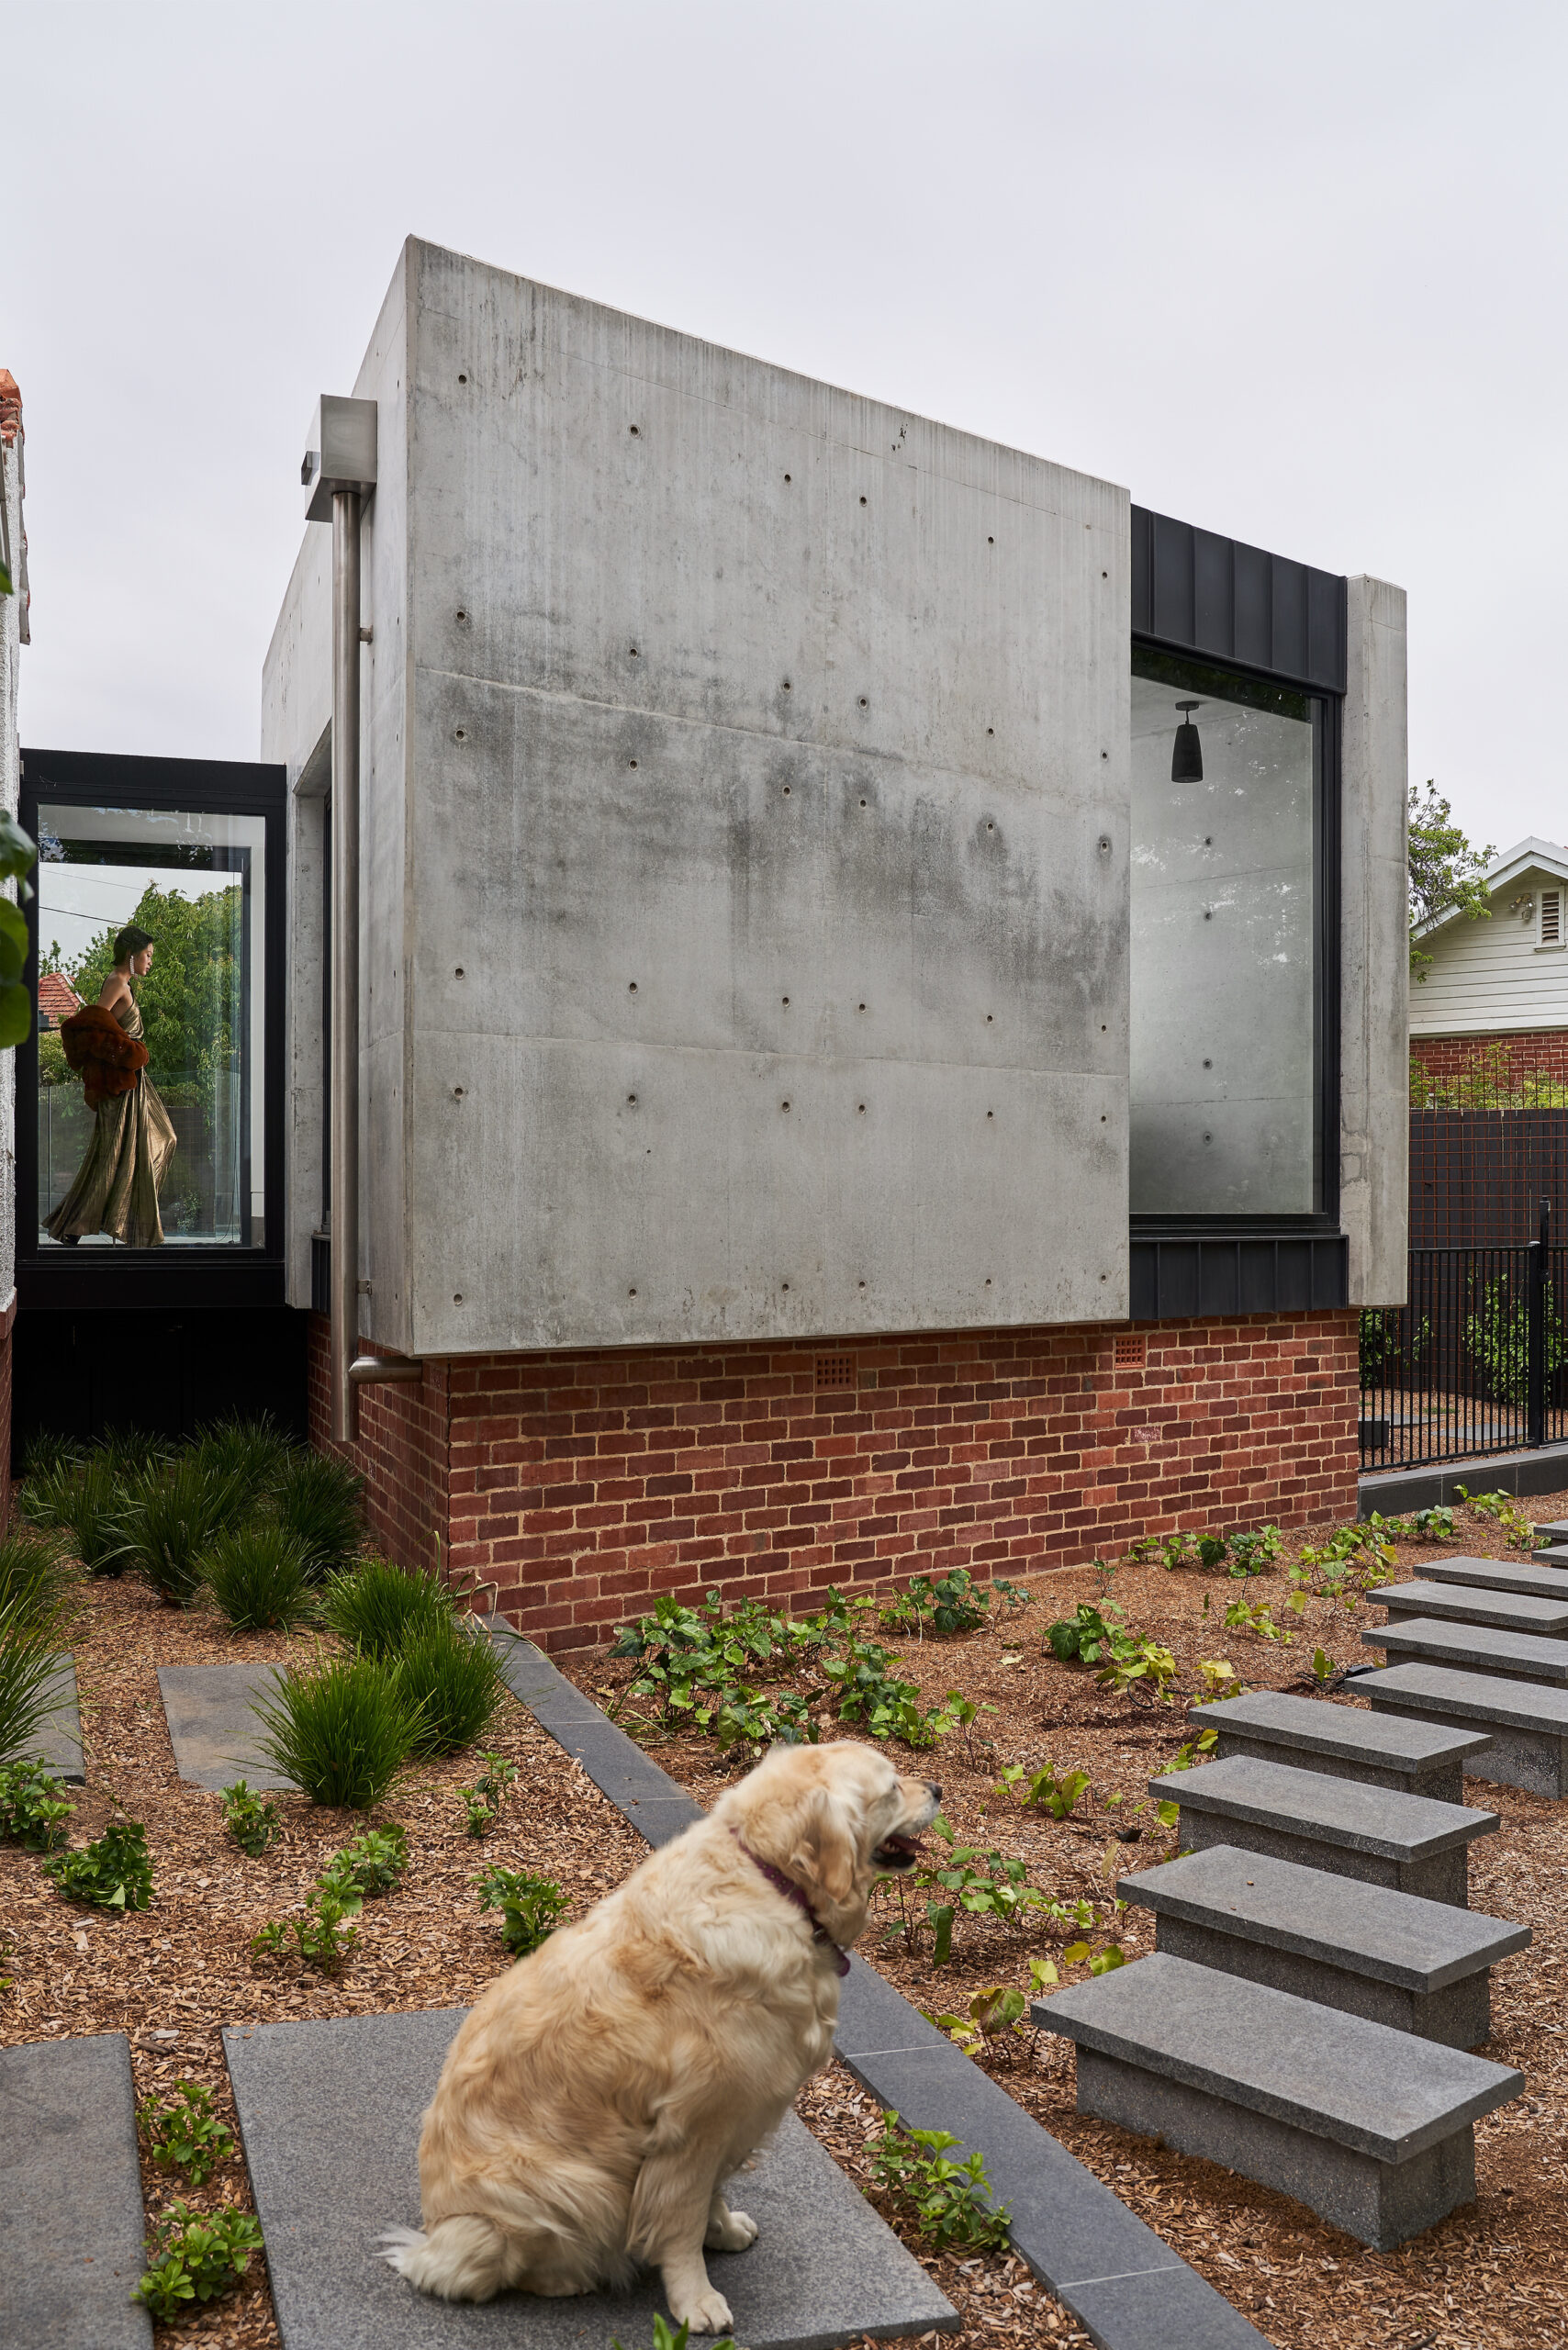 External view of the off-form concrete dining pavilion connected to the heritage listed home